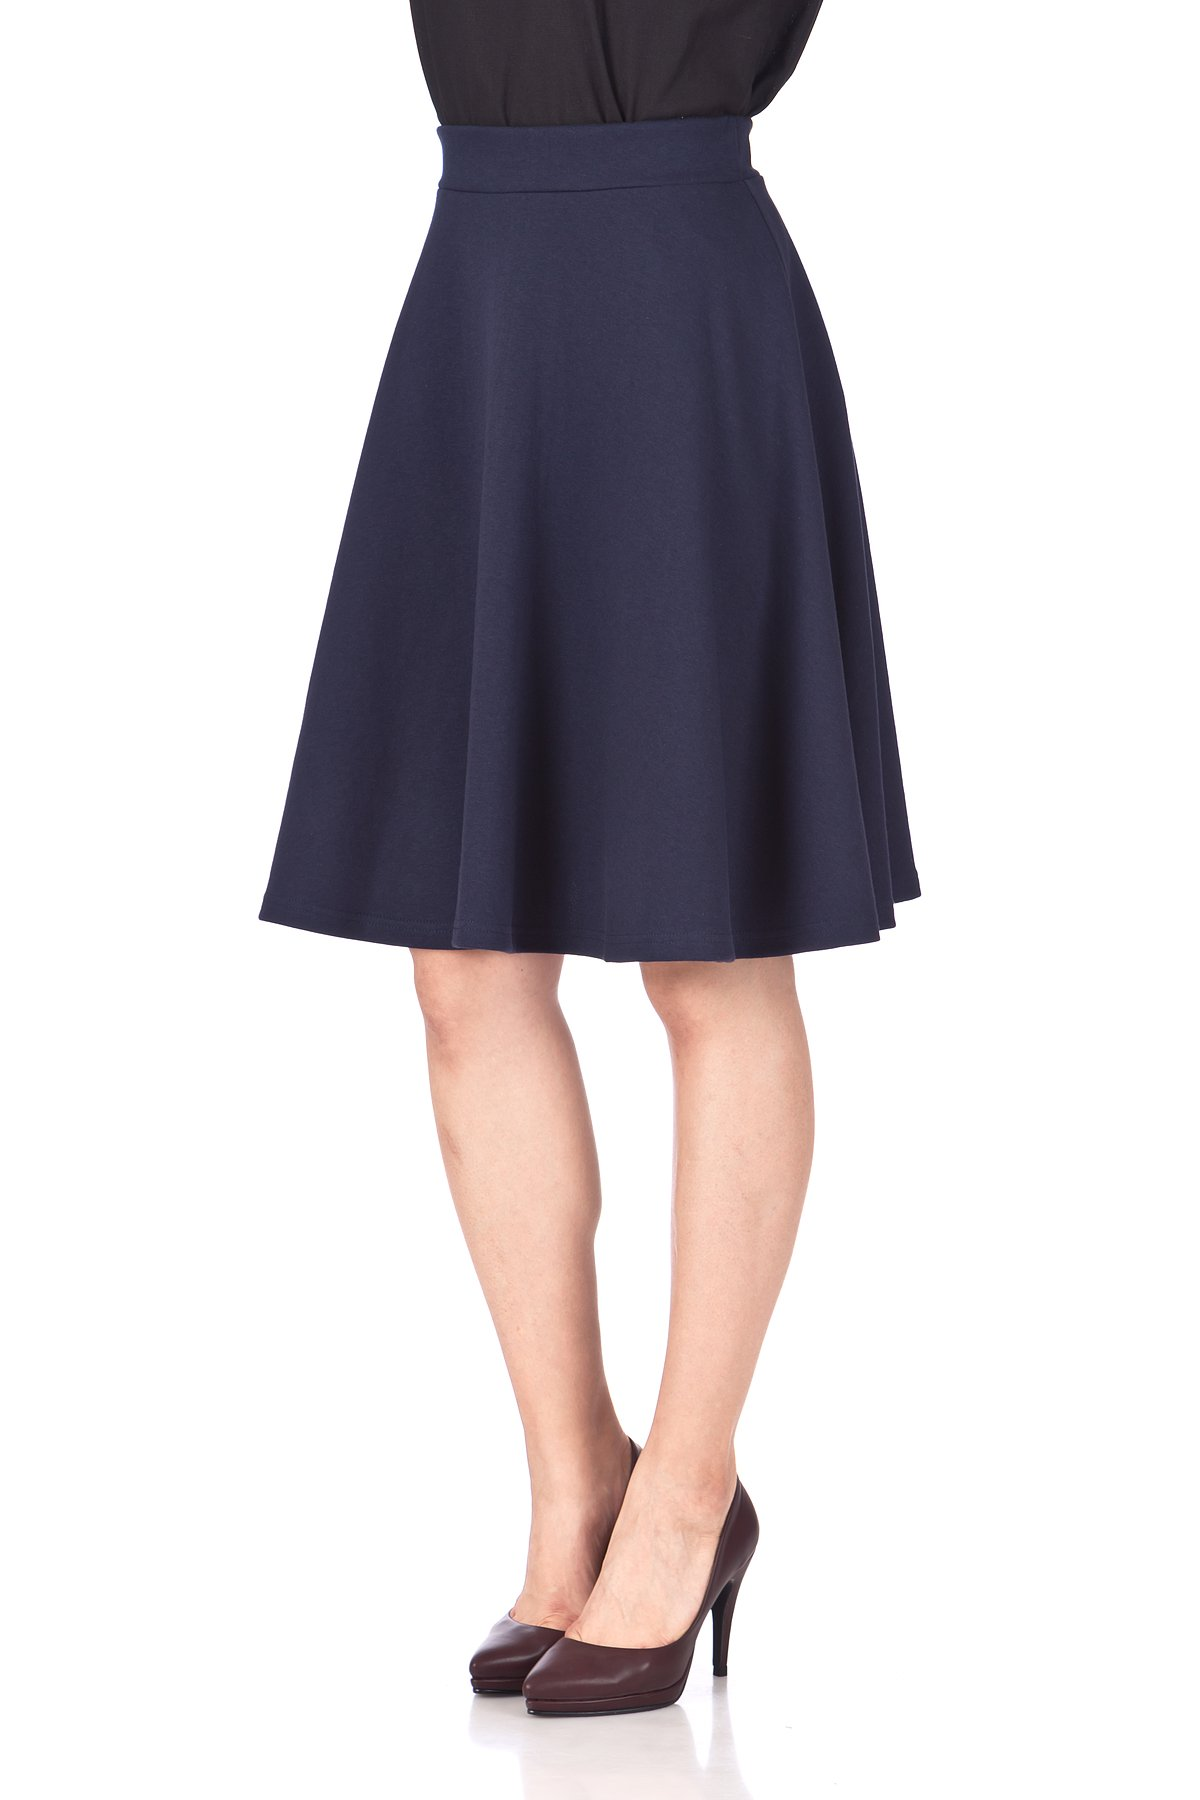 Comfy and Lovely Cotton Blend Versatile Casual Office High Waist A line Full Flared Swing Circle Skater Knee Length Skirt Navy 06